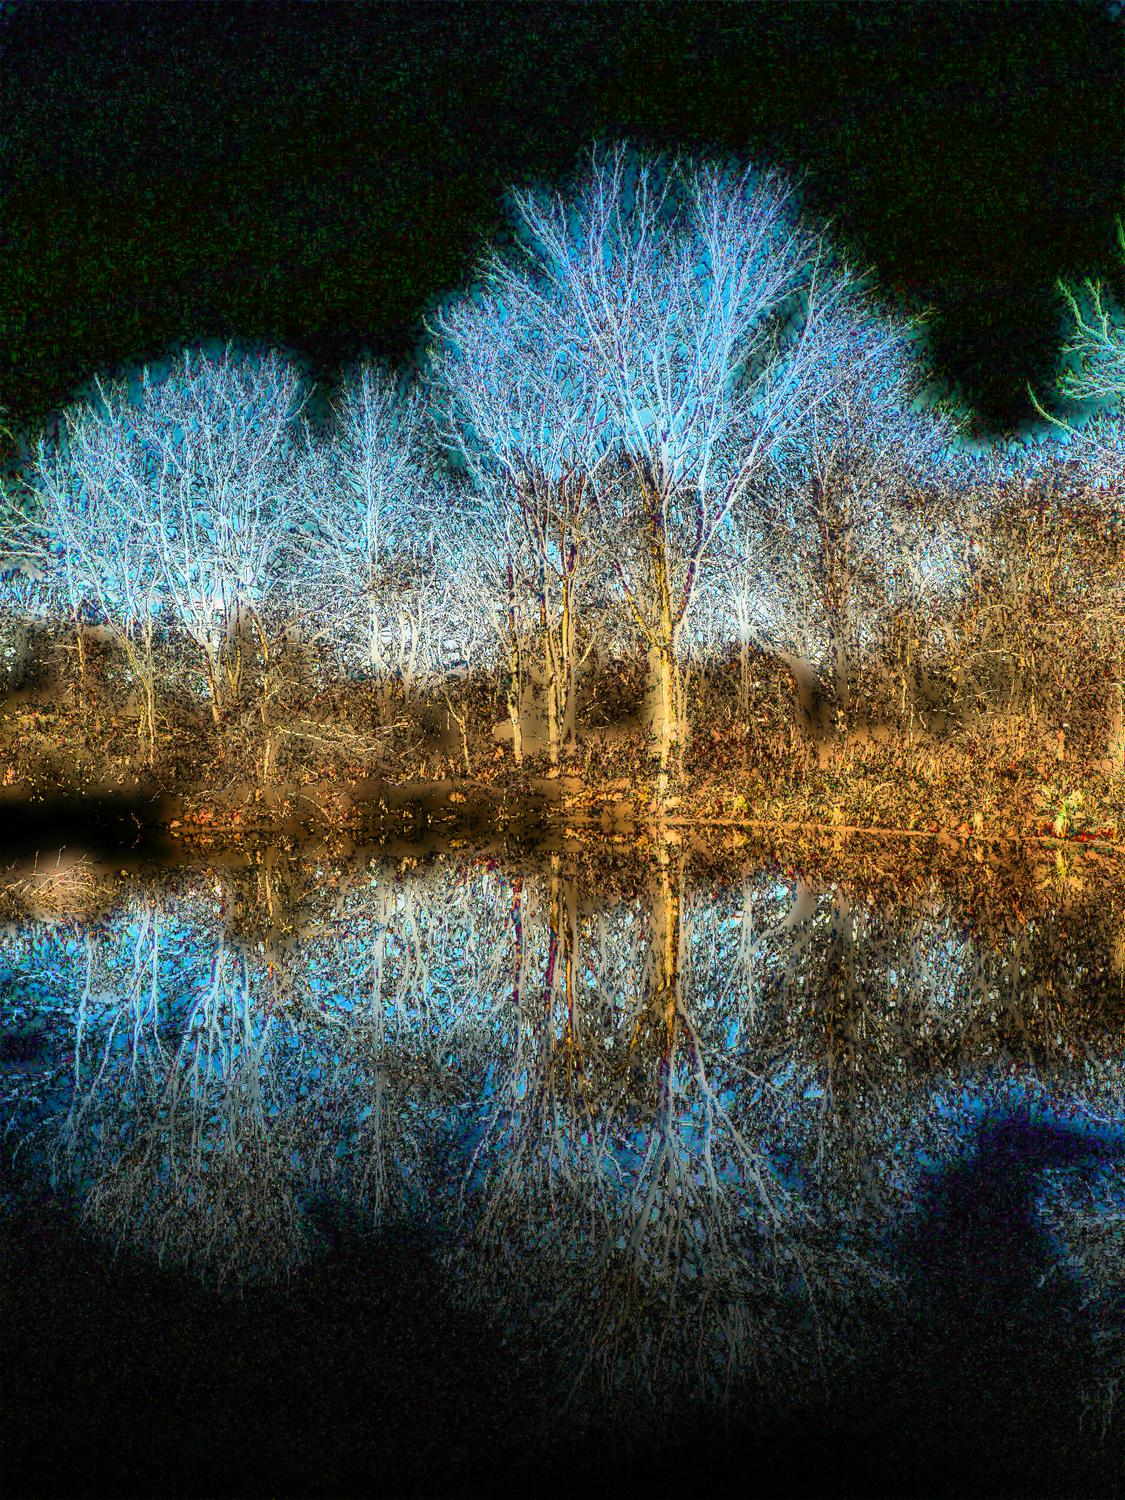 Glowing tree reflected in water - - Adding some fantasy - Ida Lee Park, Leesburg Virginia - Panasonic DMC-FZ5 - Tony Karp, design, art, photography, techno-impressionist, techno-impressionism, aerial photography , drone , drones , dji , mavic pro , video , 3D printing - Books -